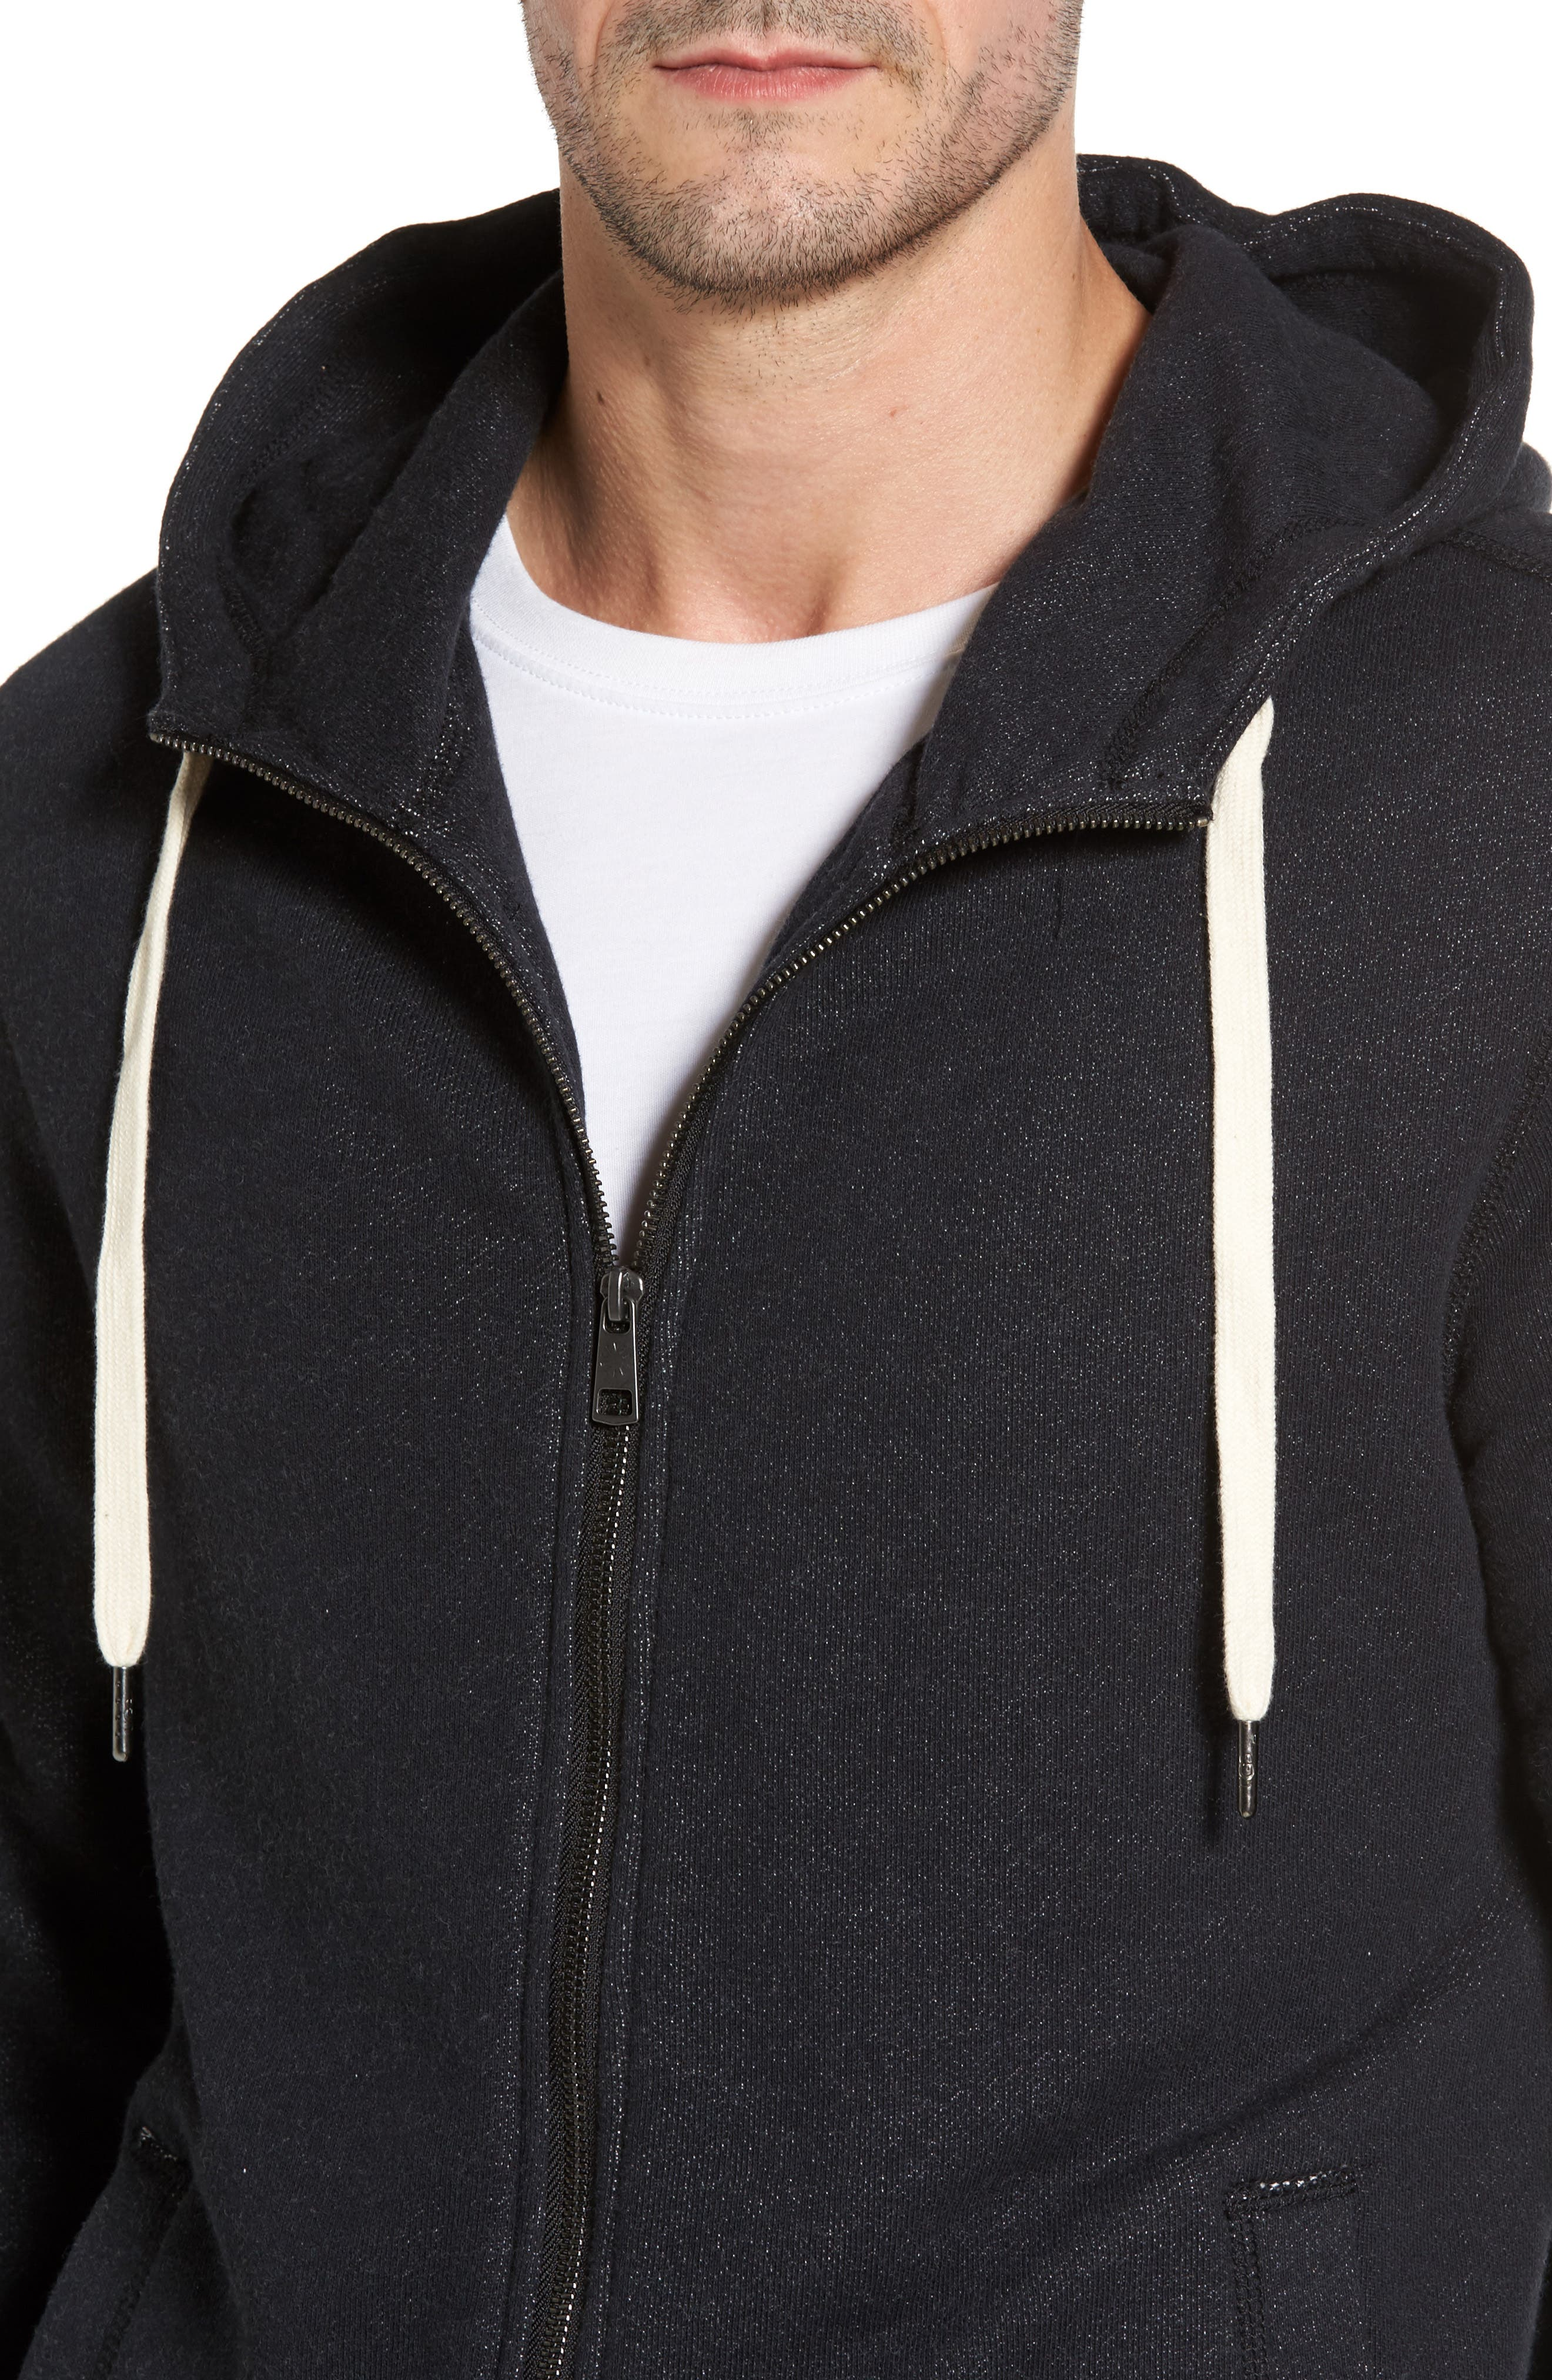 French Terry Full Zip Hoodie,                             Alternate thumbnail 4, color,                             Black